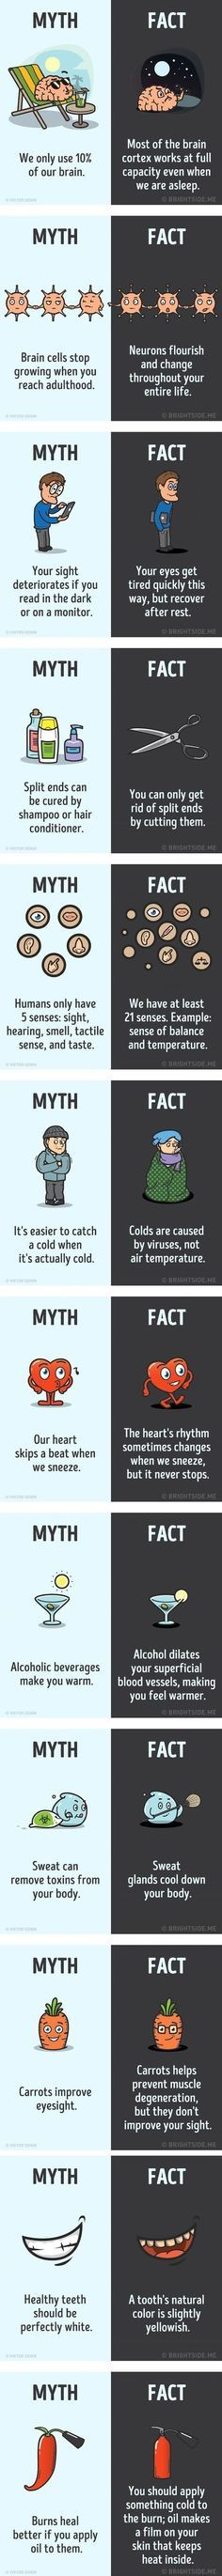 Some interesting facts for you - Imgur